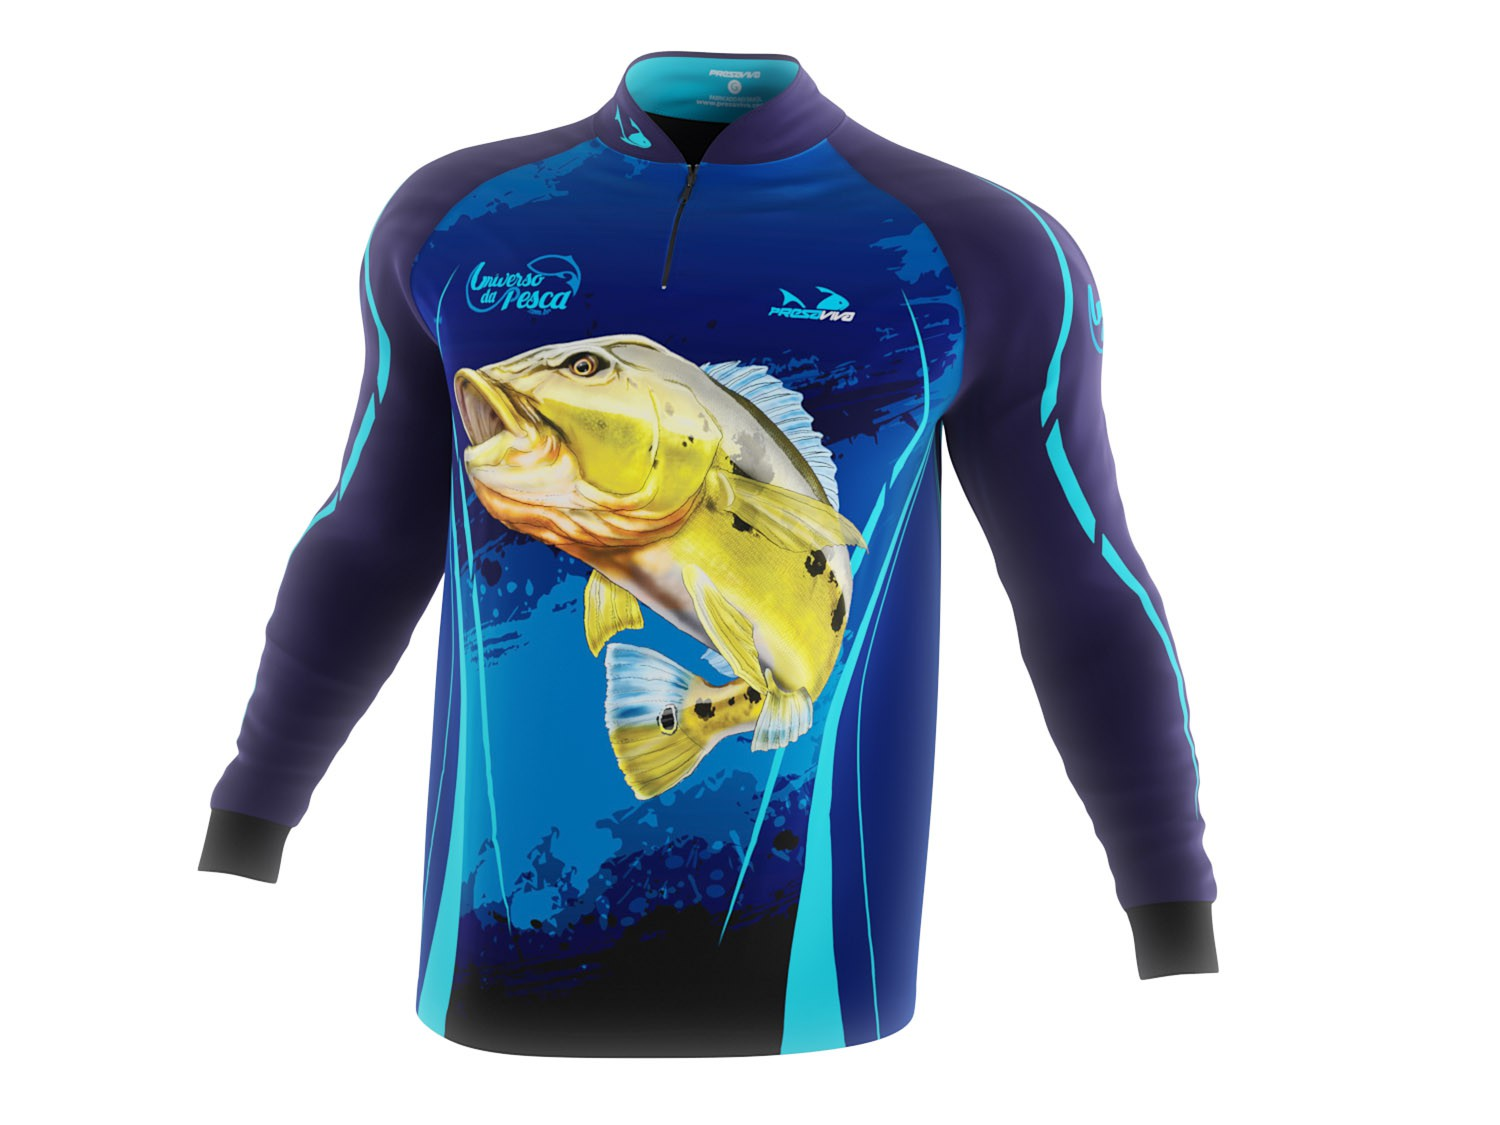 Camisa Exclusiva 02 UP - Masculina - Universo da Pesca